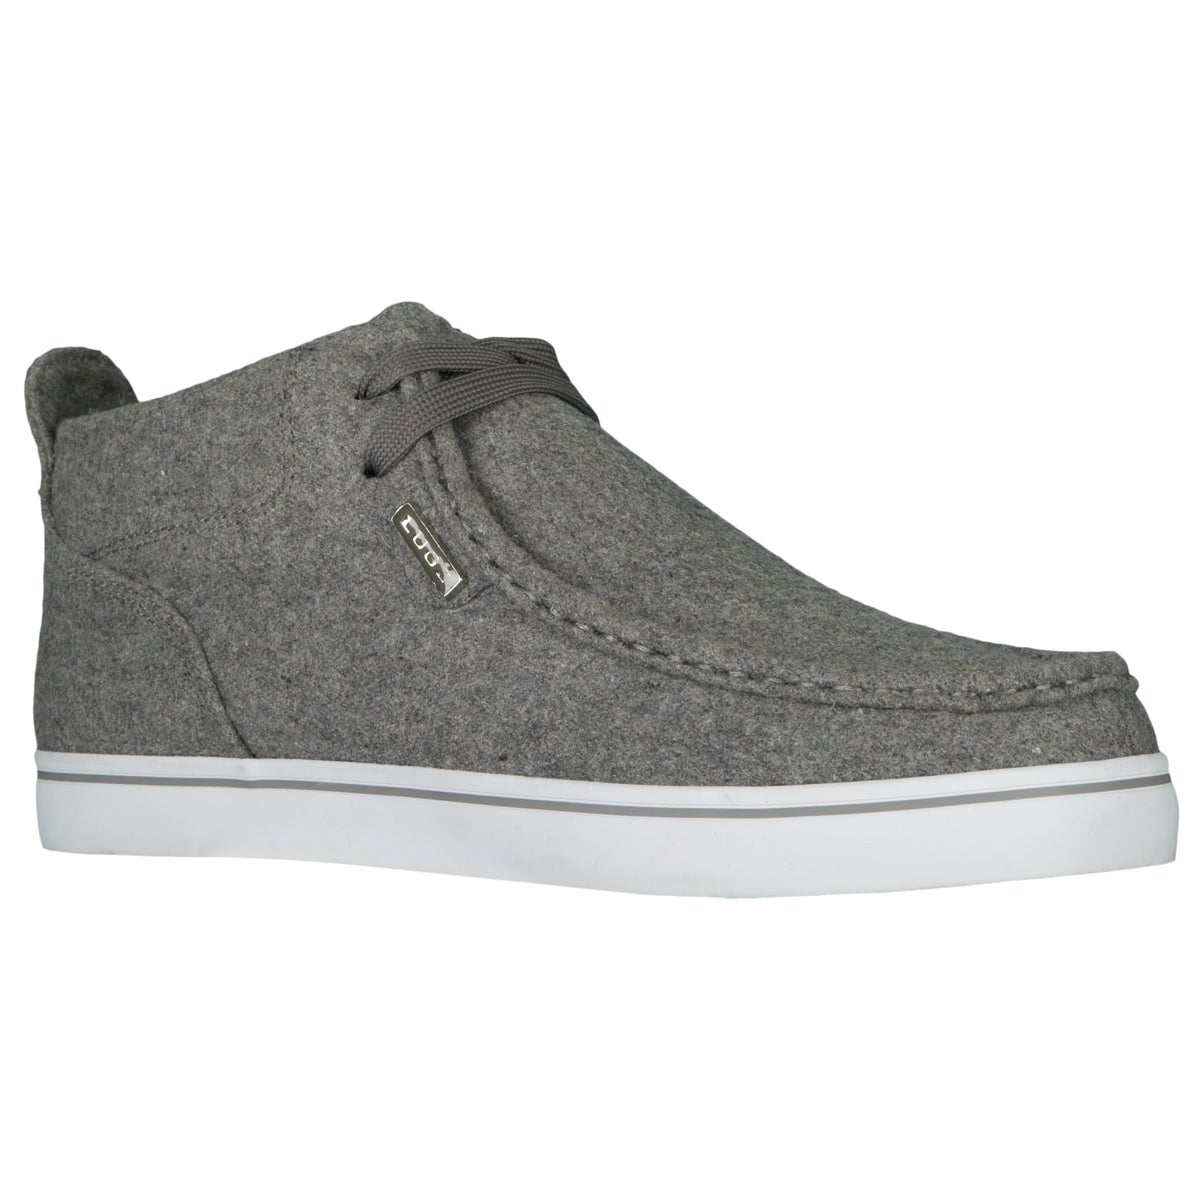 Lugz Mens' Strider Peacoat Shoe